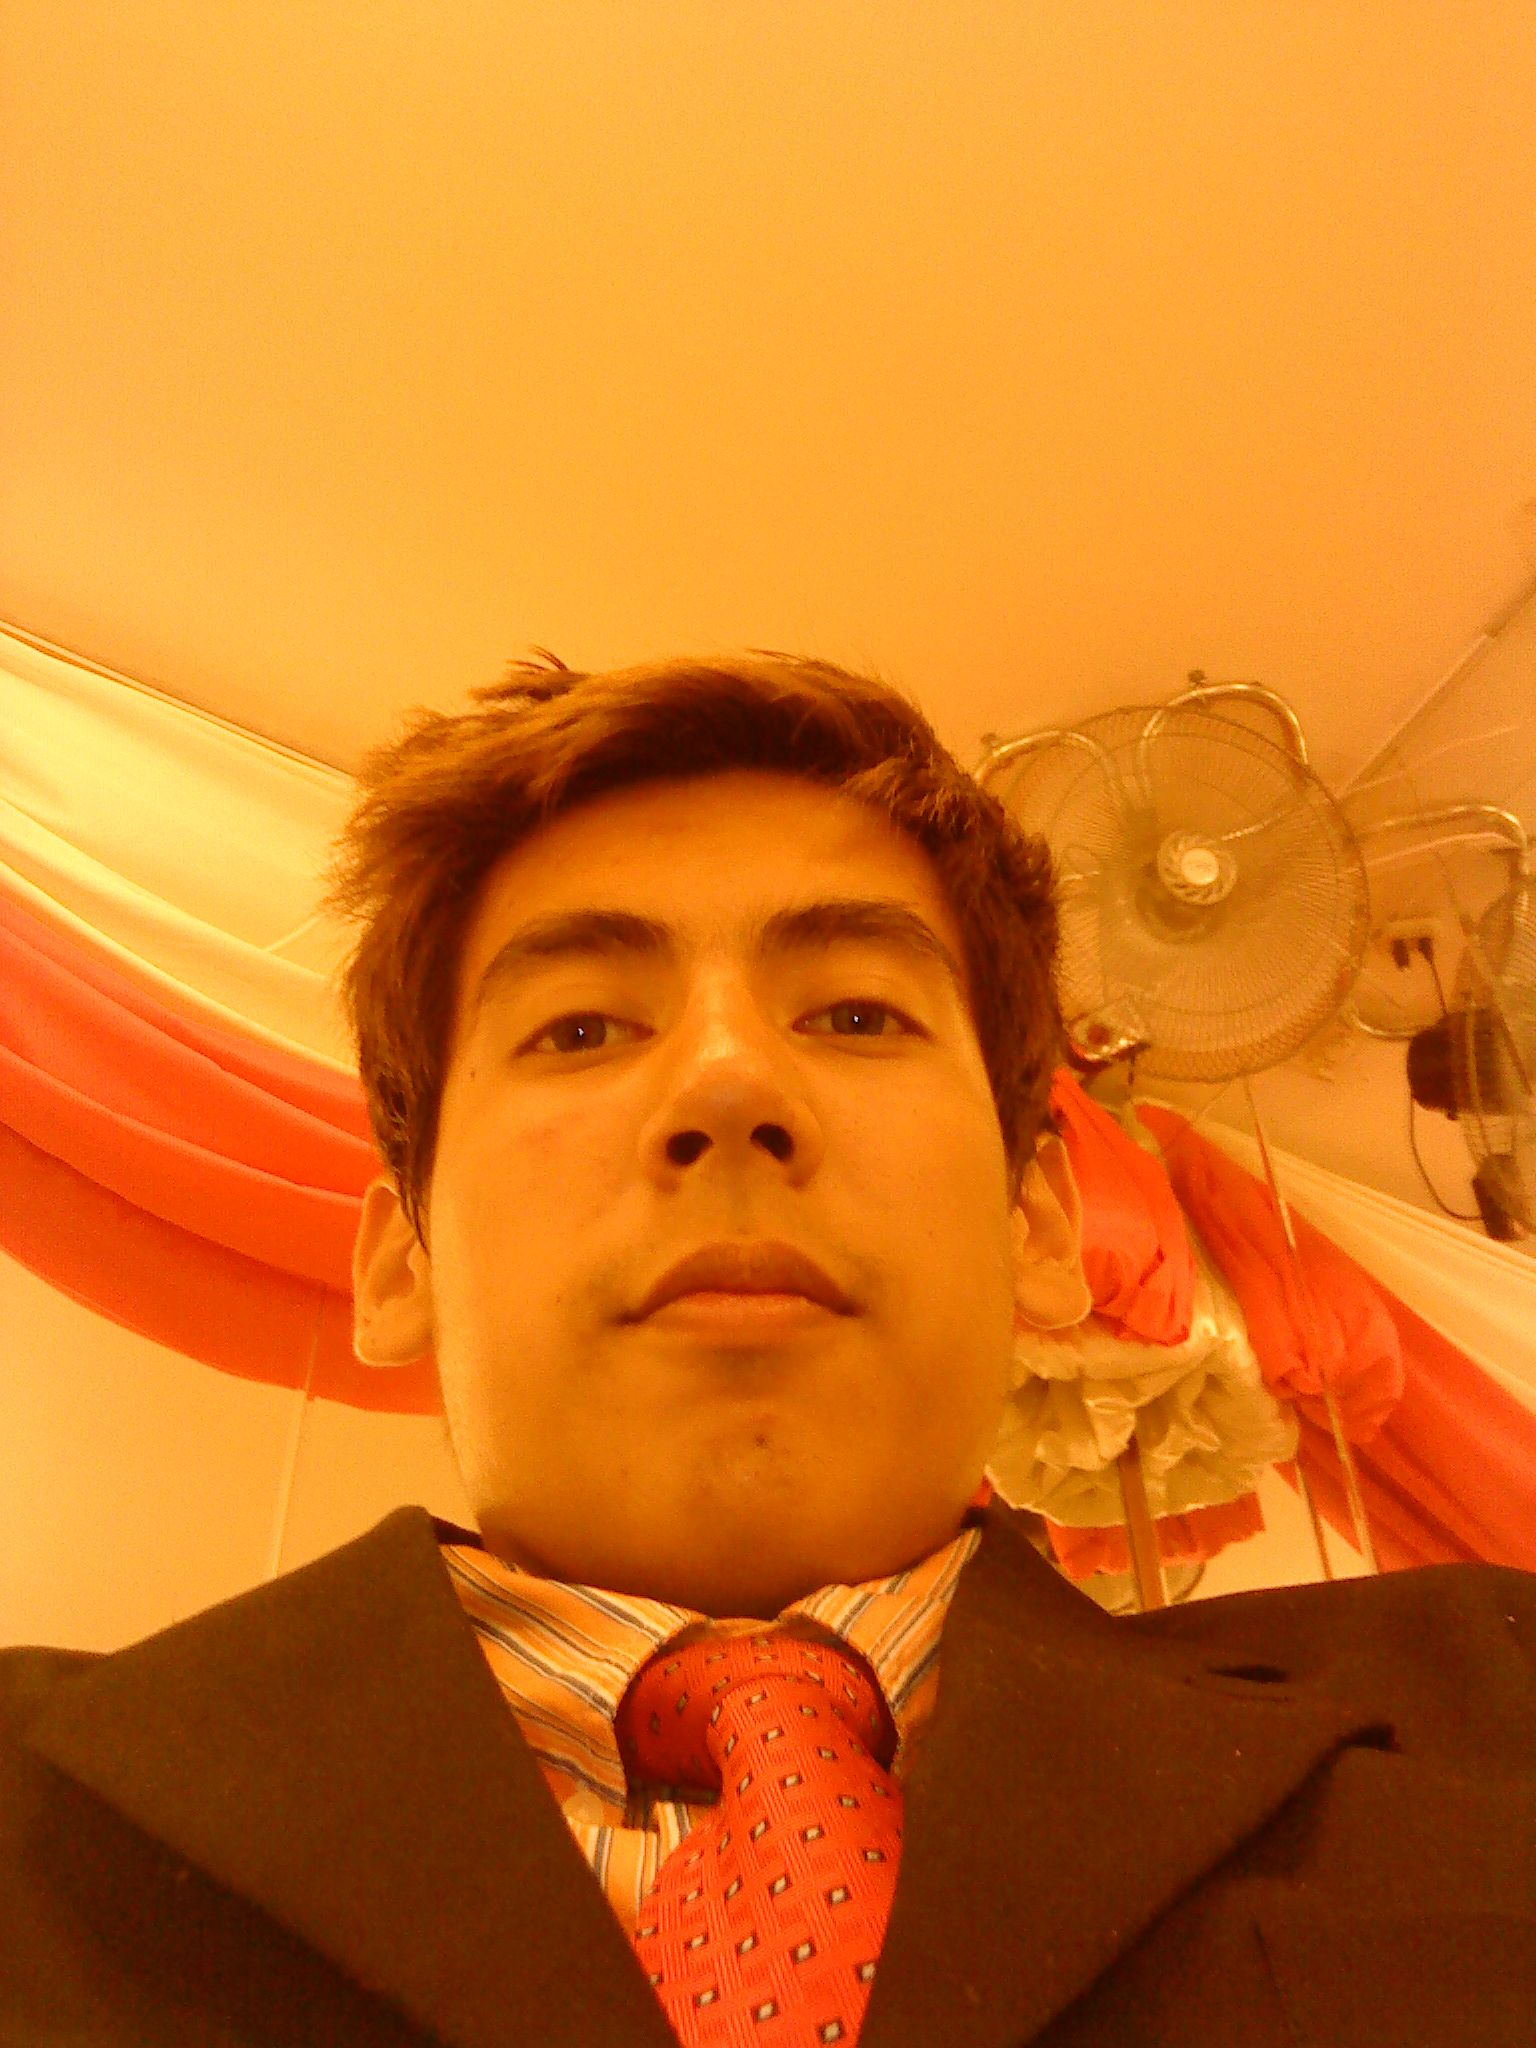 Last year 2013 when i went to a friend's quinceañera party :) hehehe i had a great time